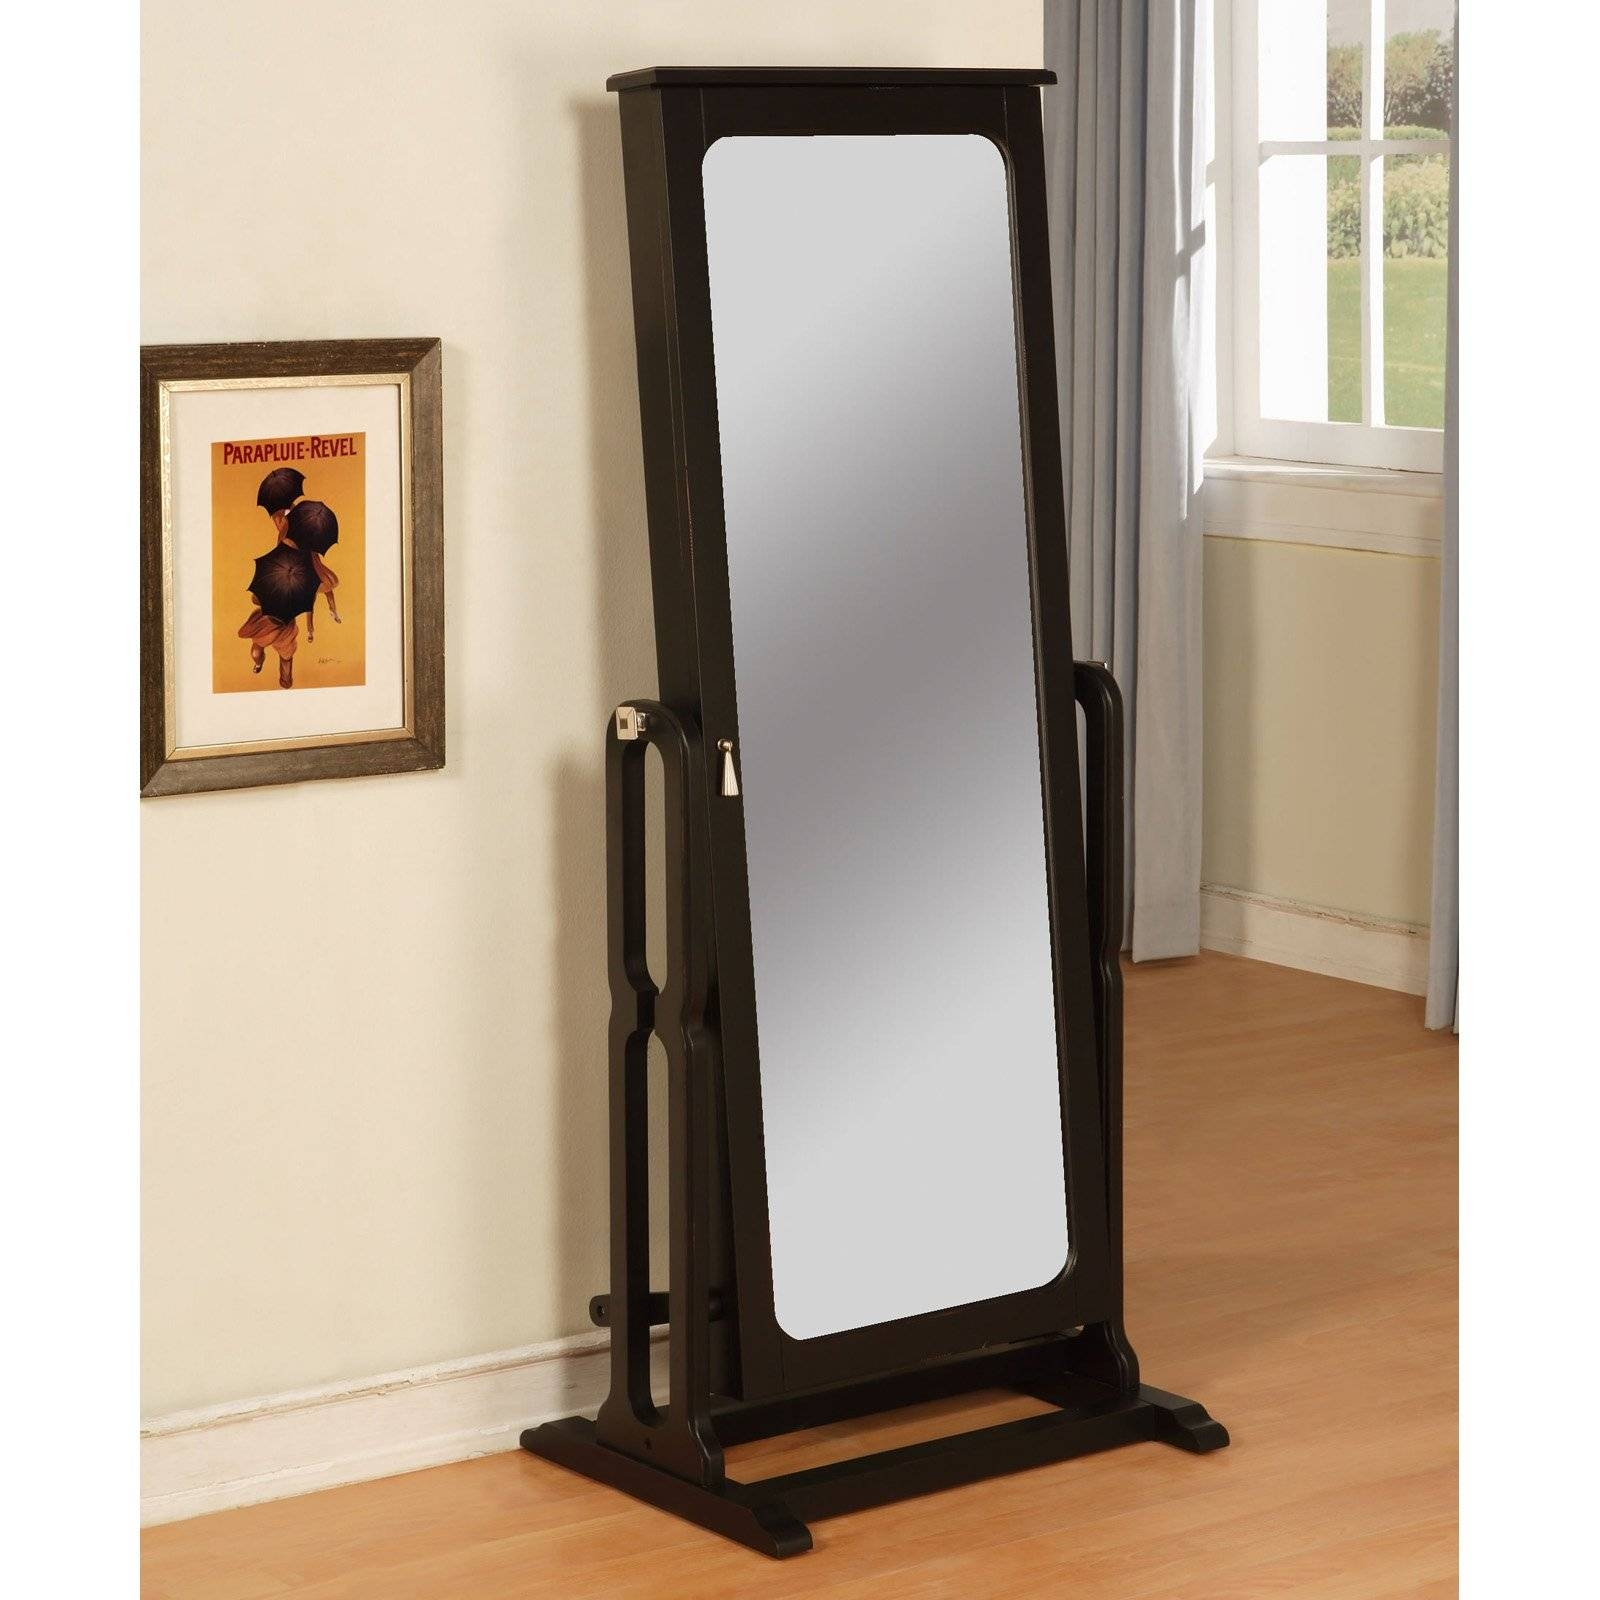 Furniture: Mesmerizing Jewelry Armoire Mirror For Home Furniture intended for Cream Standing Mirrors (Image 17 of 25)